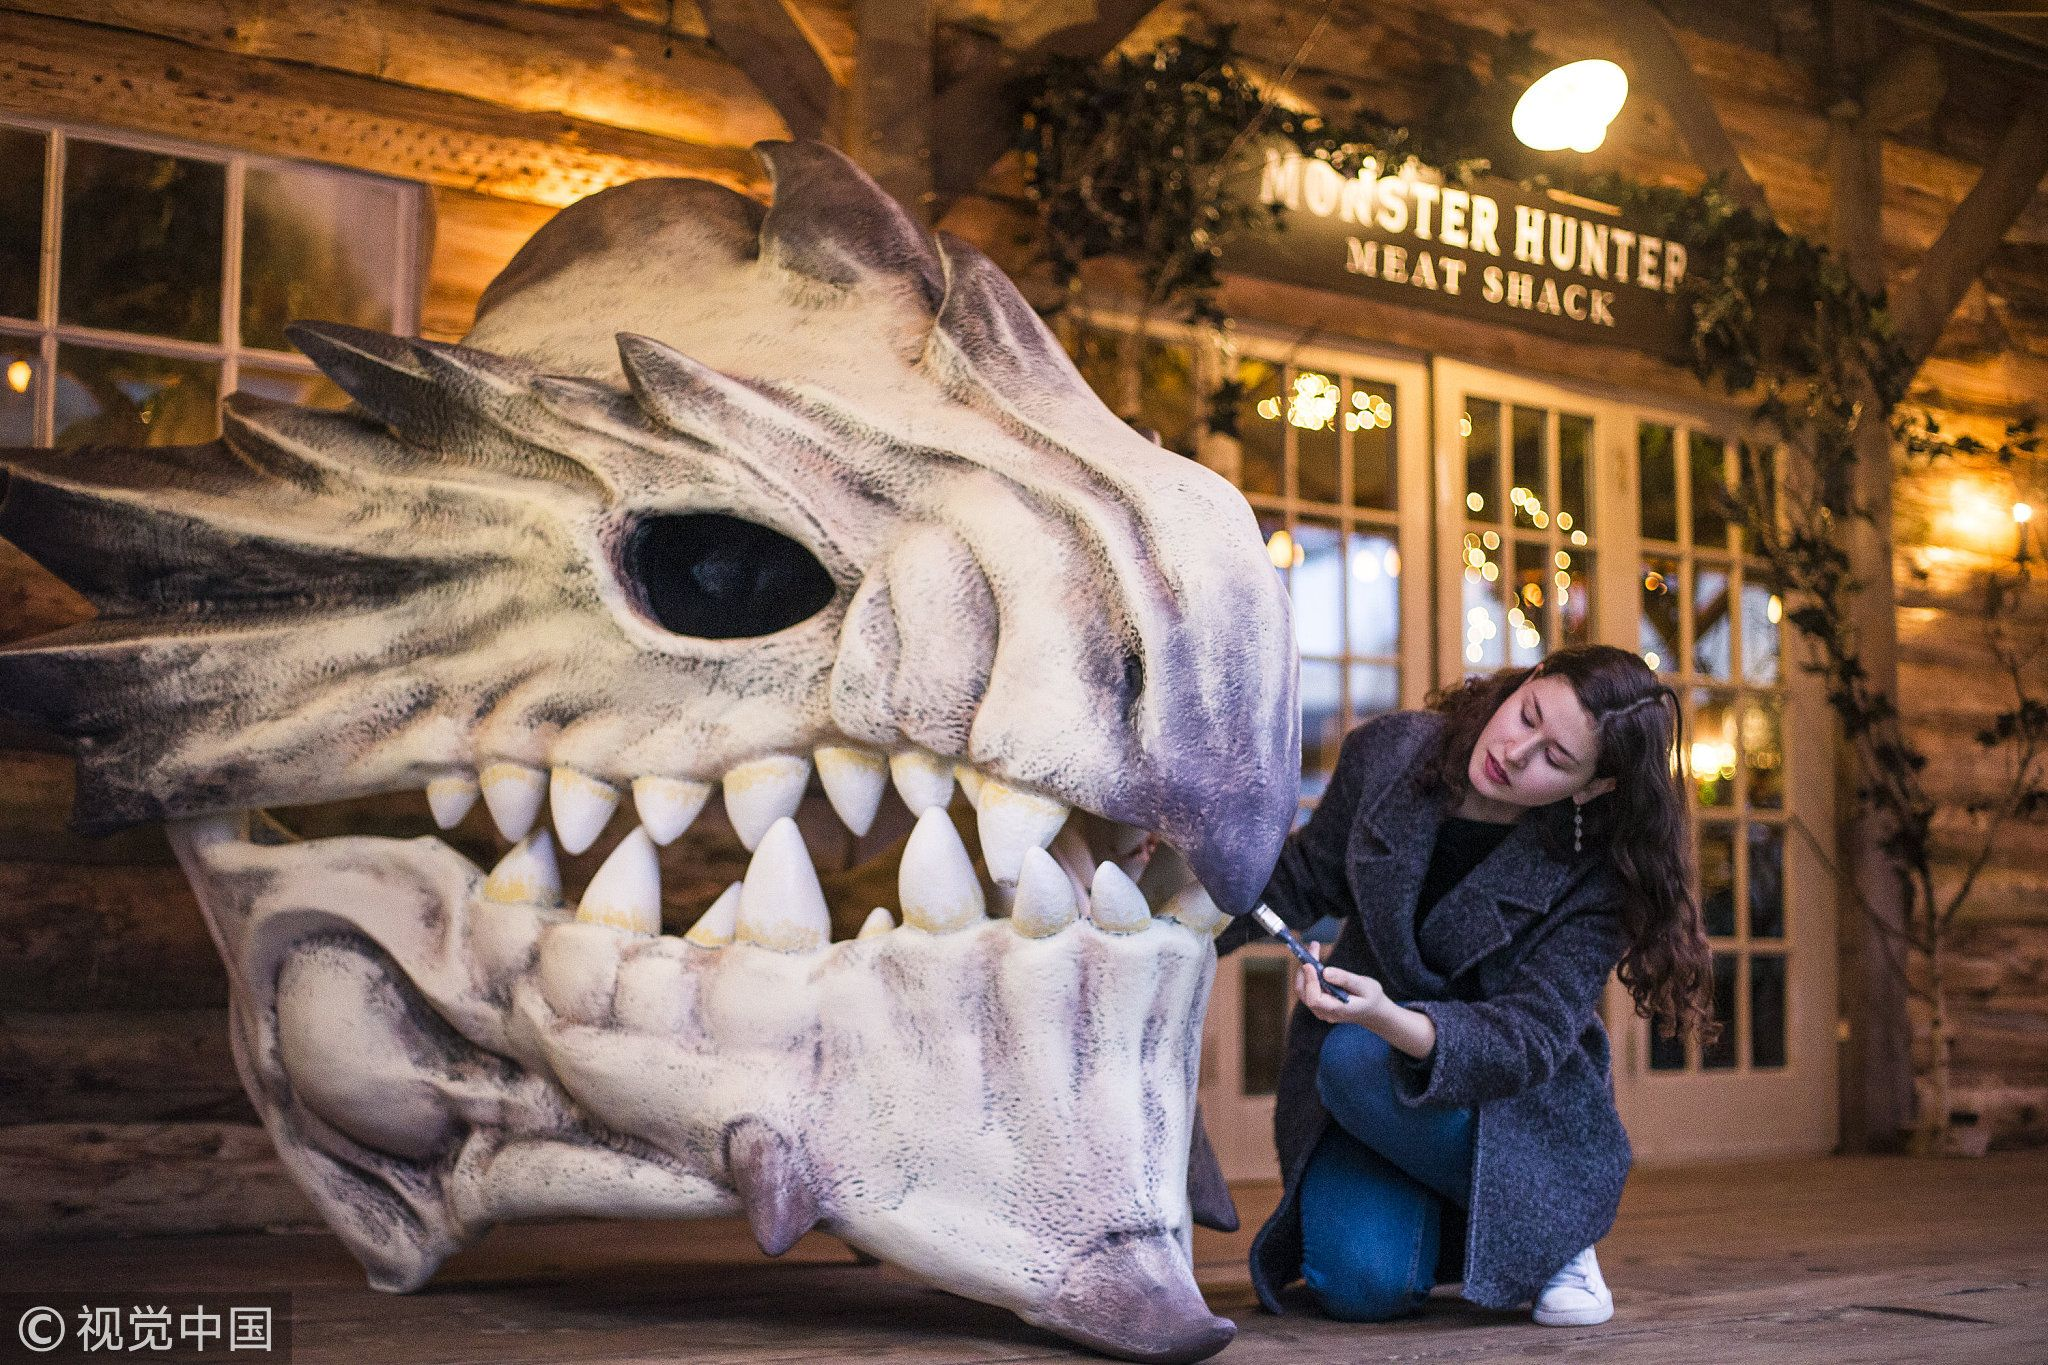 Visitors Can Immerse Themselves In A Mythical World At The Monster